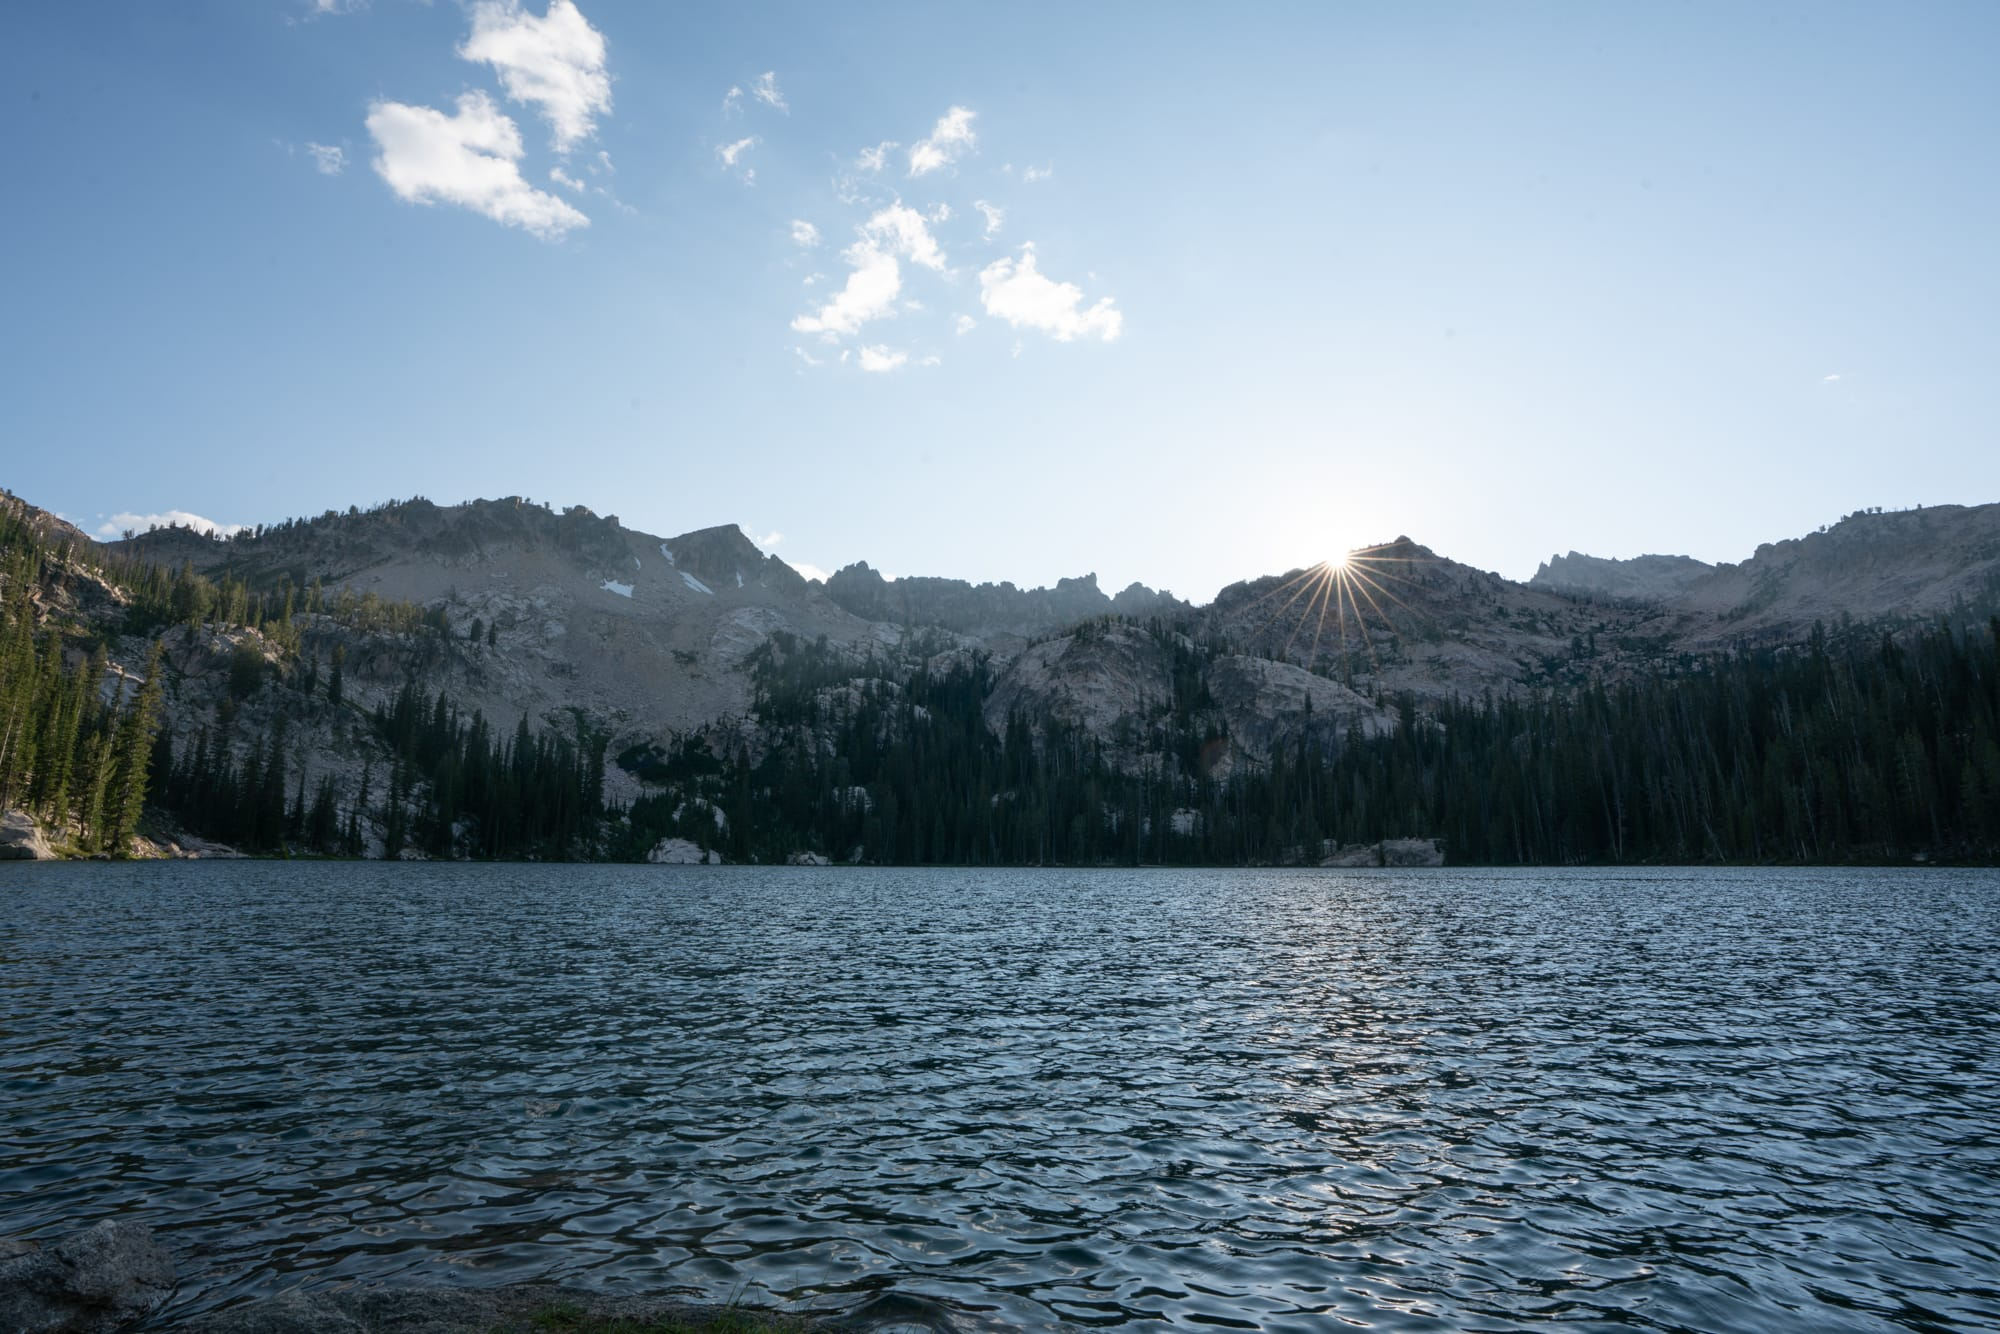 Baron Lakes is one of those iconic hikes in Idaho's Sawtooth Mountains with several high alpine lakes to choose from and wide open views of the jagged Sawtooth Range.  Get my trail and campsite tips with this detailed Baron Lakes backpacking guide.